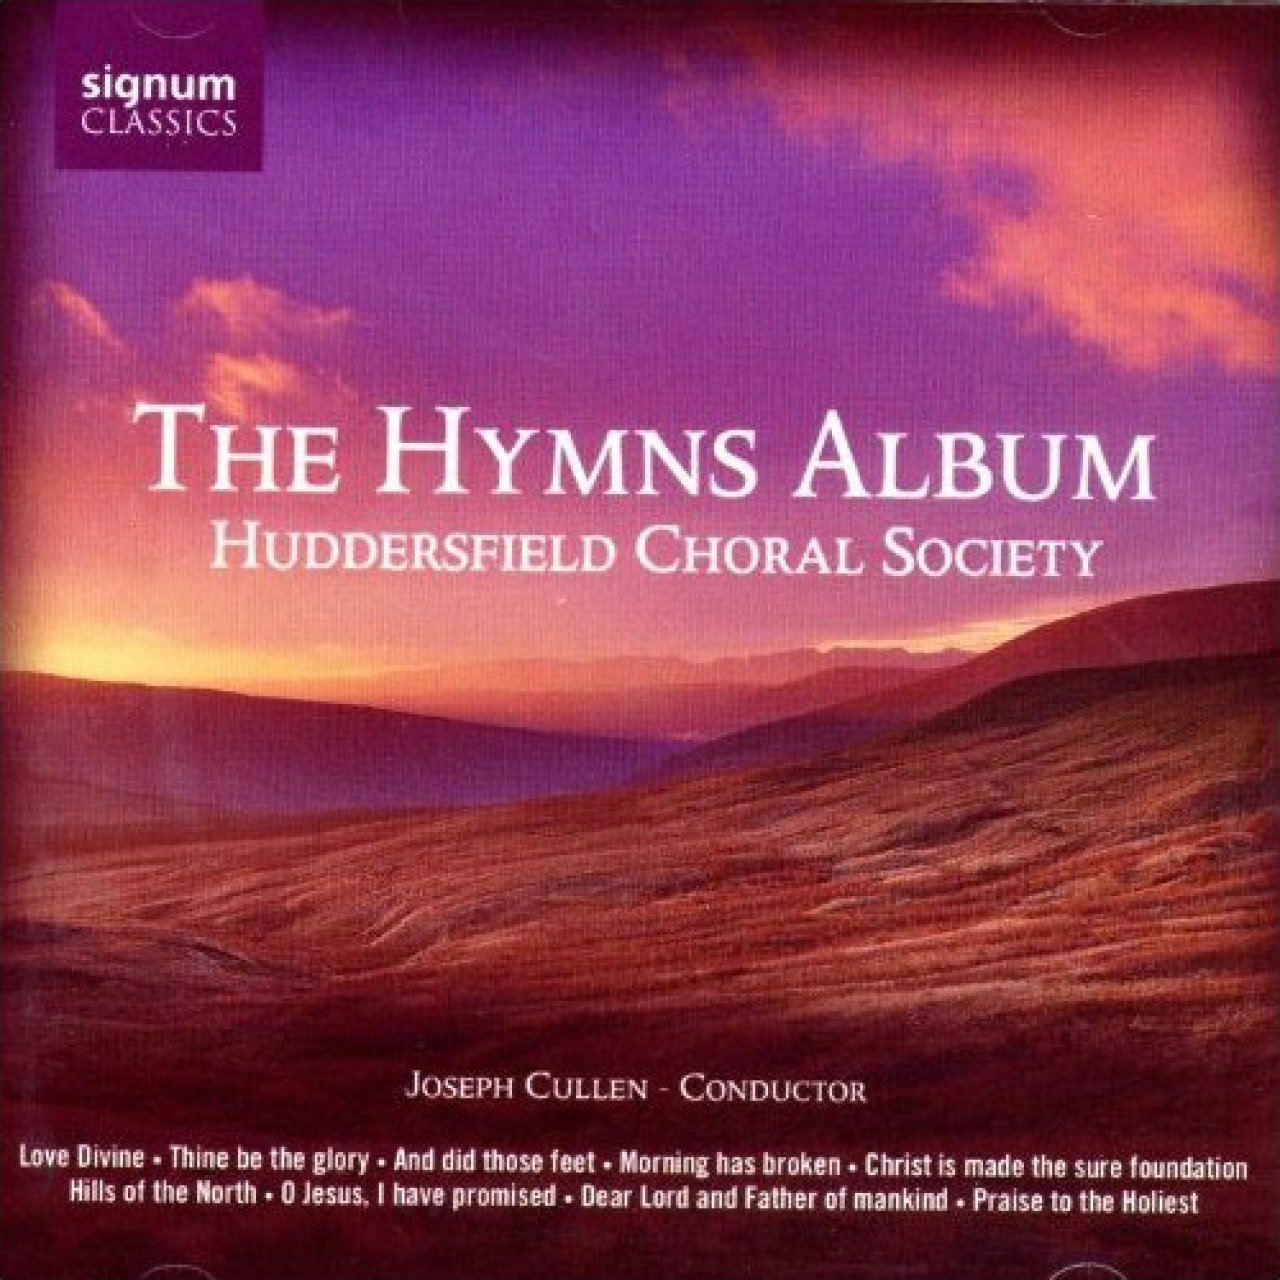 Huddersfield Choral Society - The Hymns Album (2006)